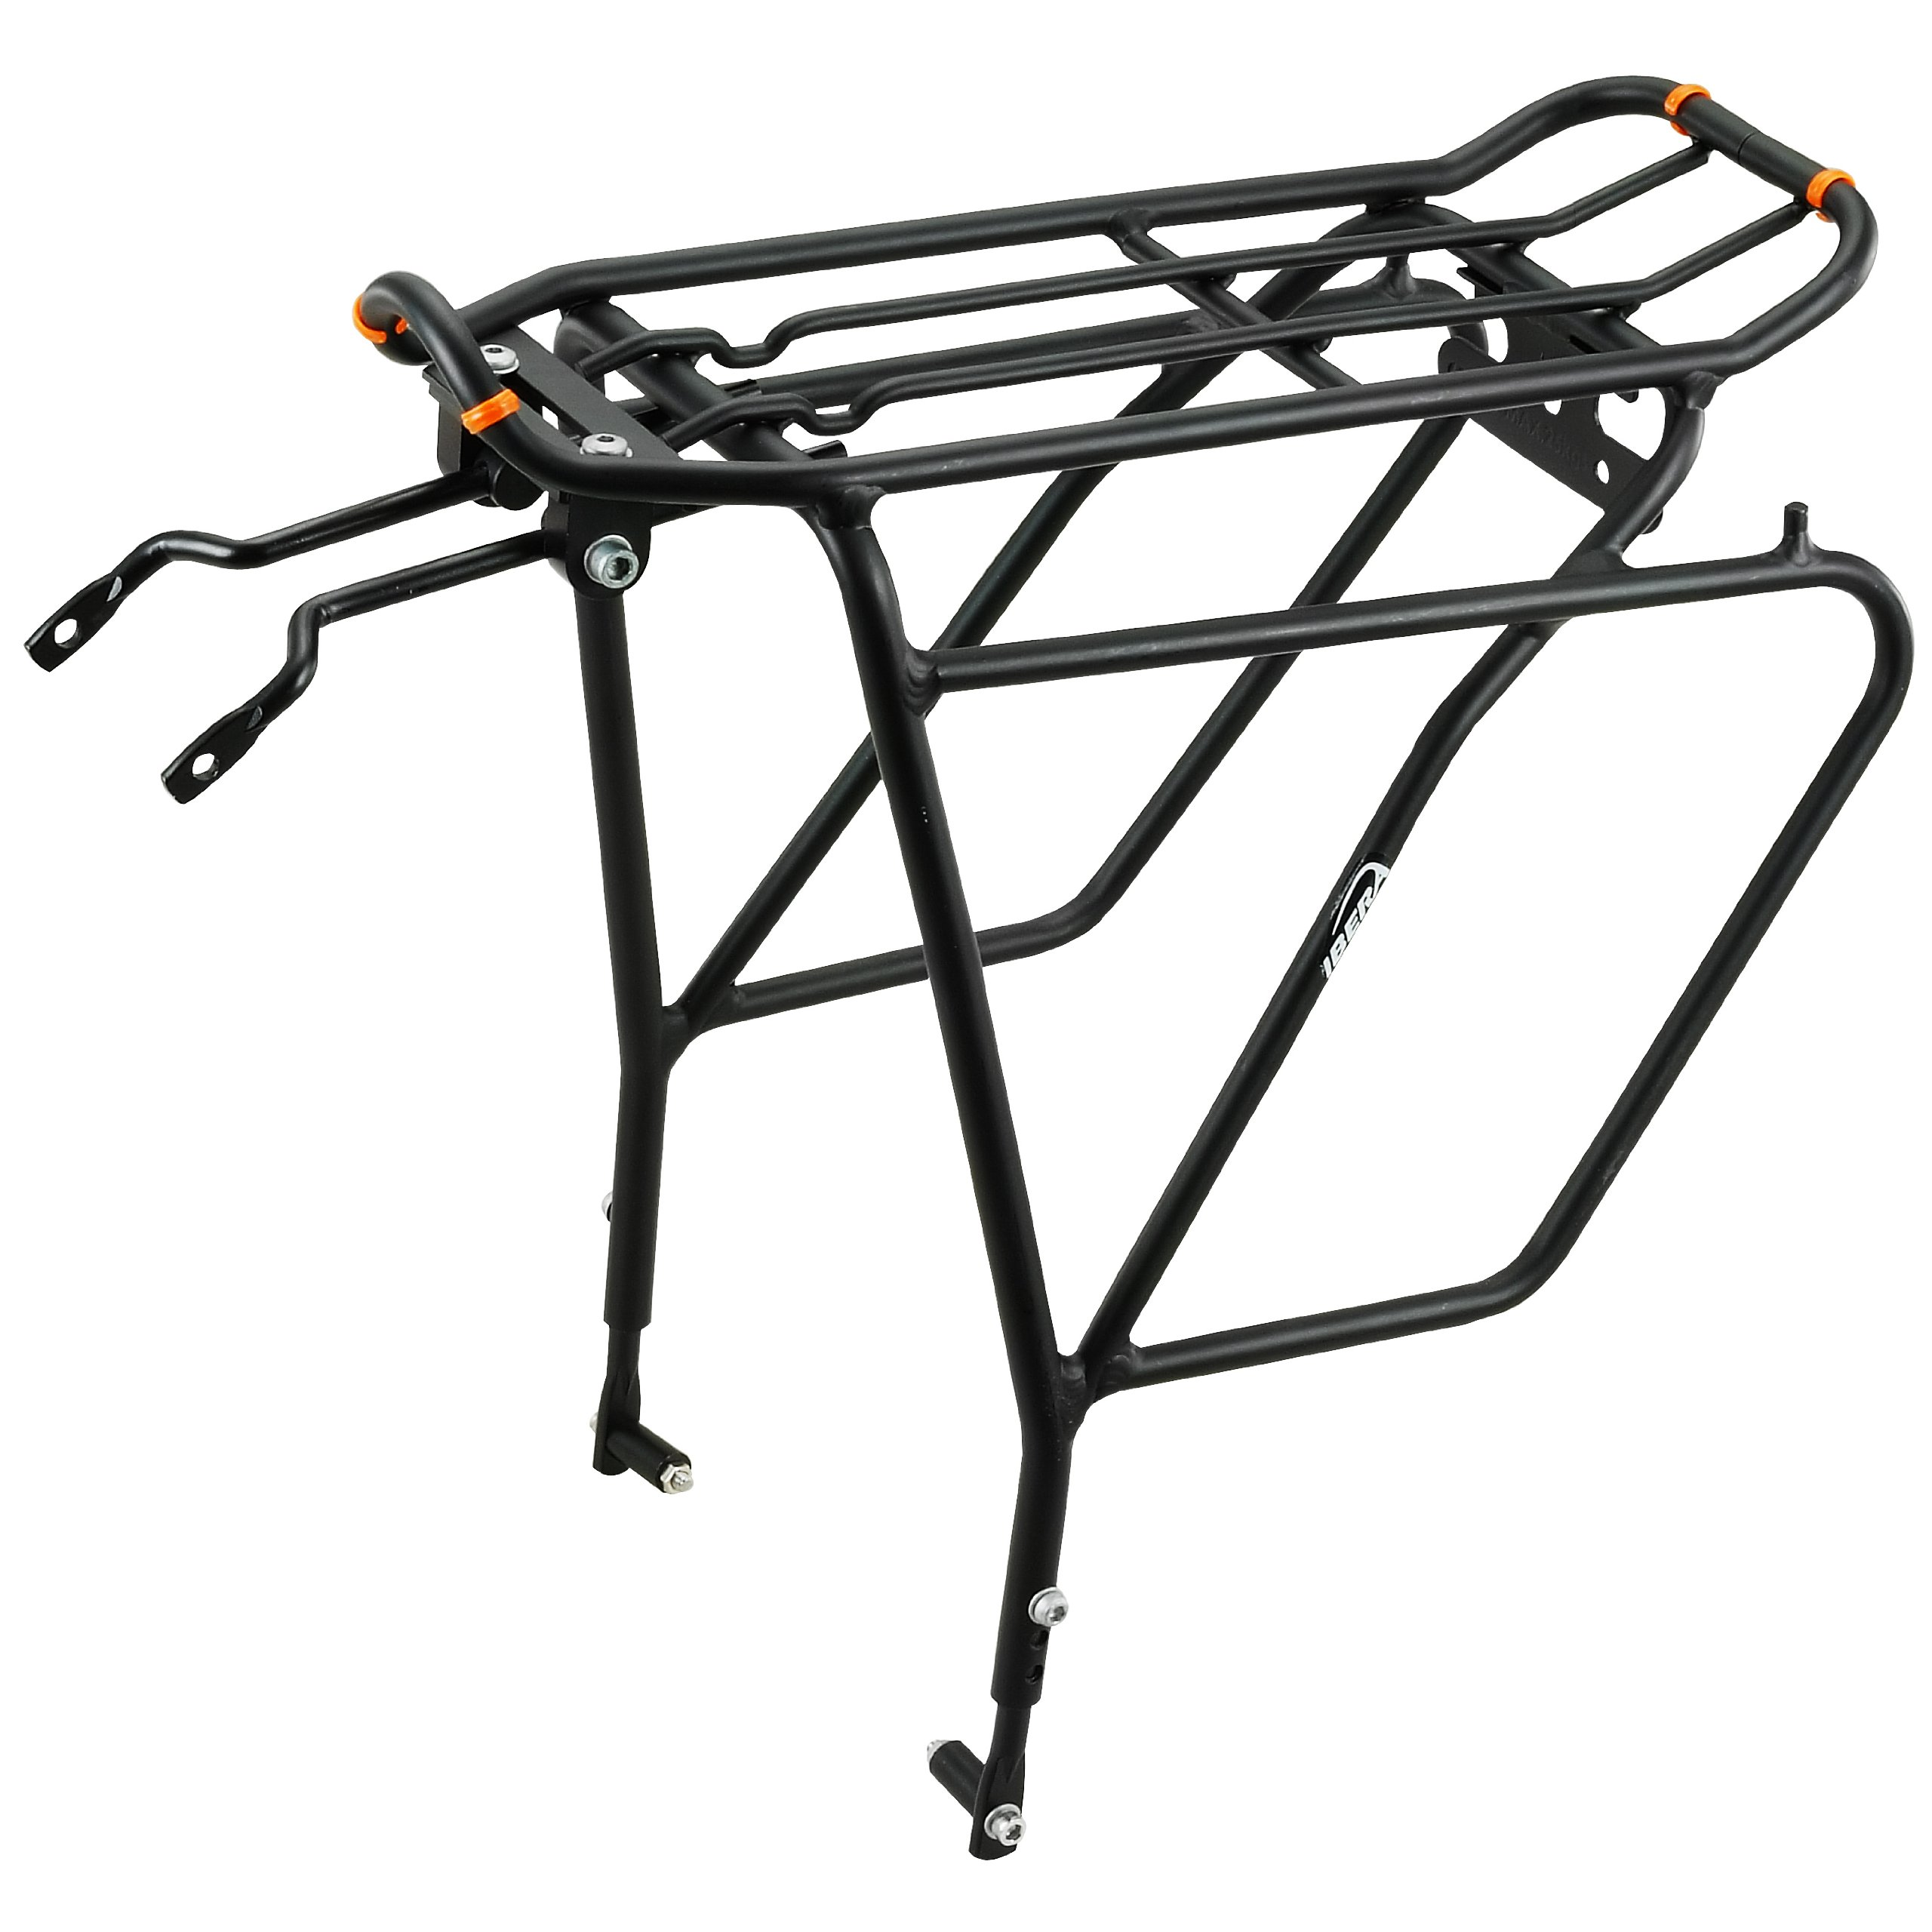 Ibera Bike Rack - Bicycle Touring Carrier Plus+ for Disc Brake Mount, Frame-Mounted for Heavier Top & Side Loads, Height Adjustable for 26''-29'' Frames